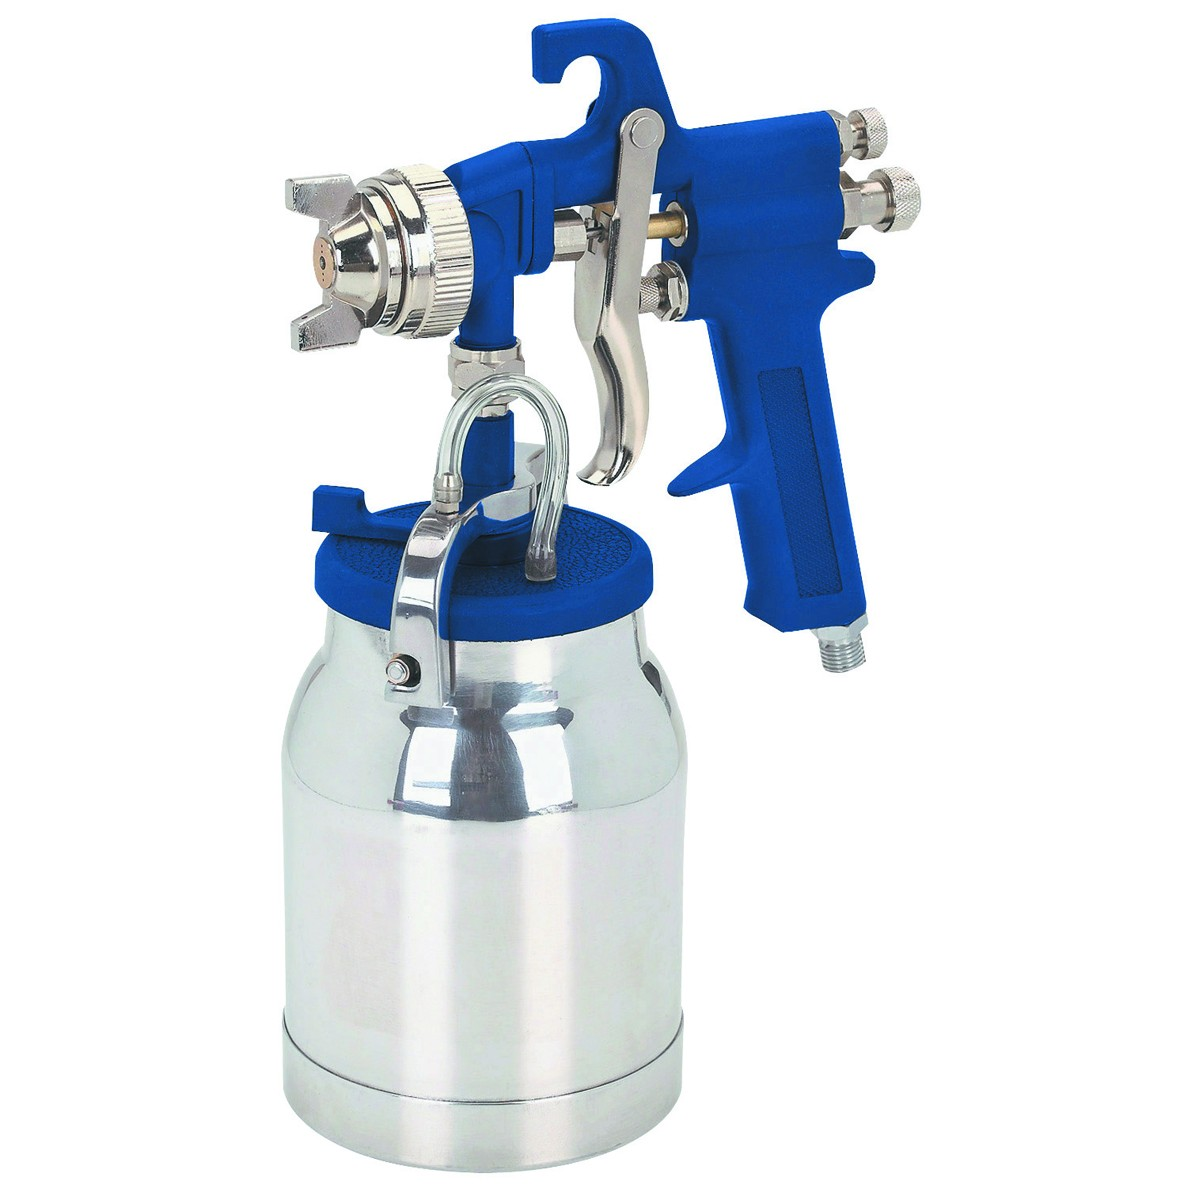 32 oz. General Purpose Air Spray Gun